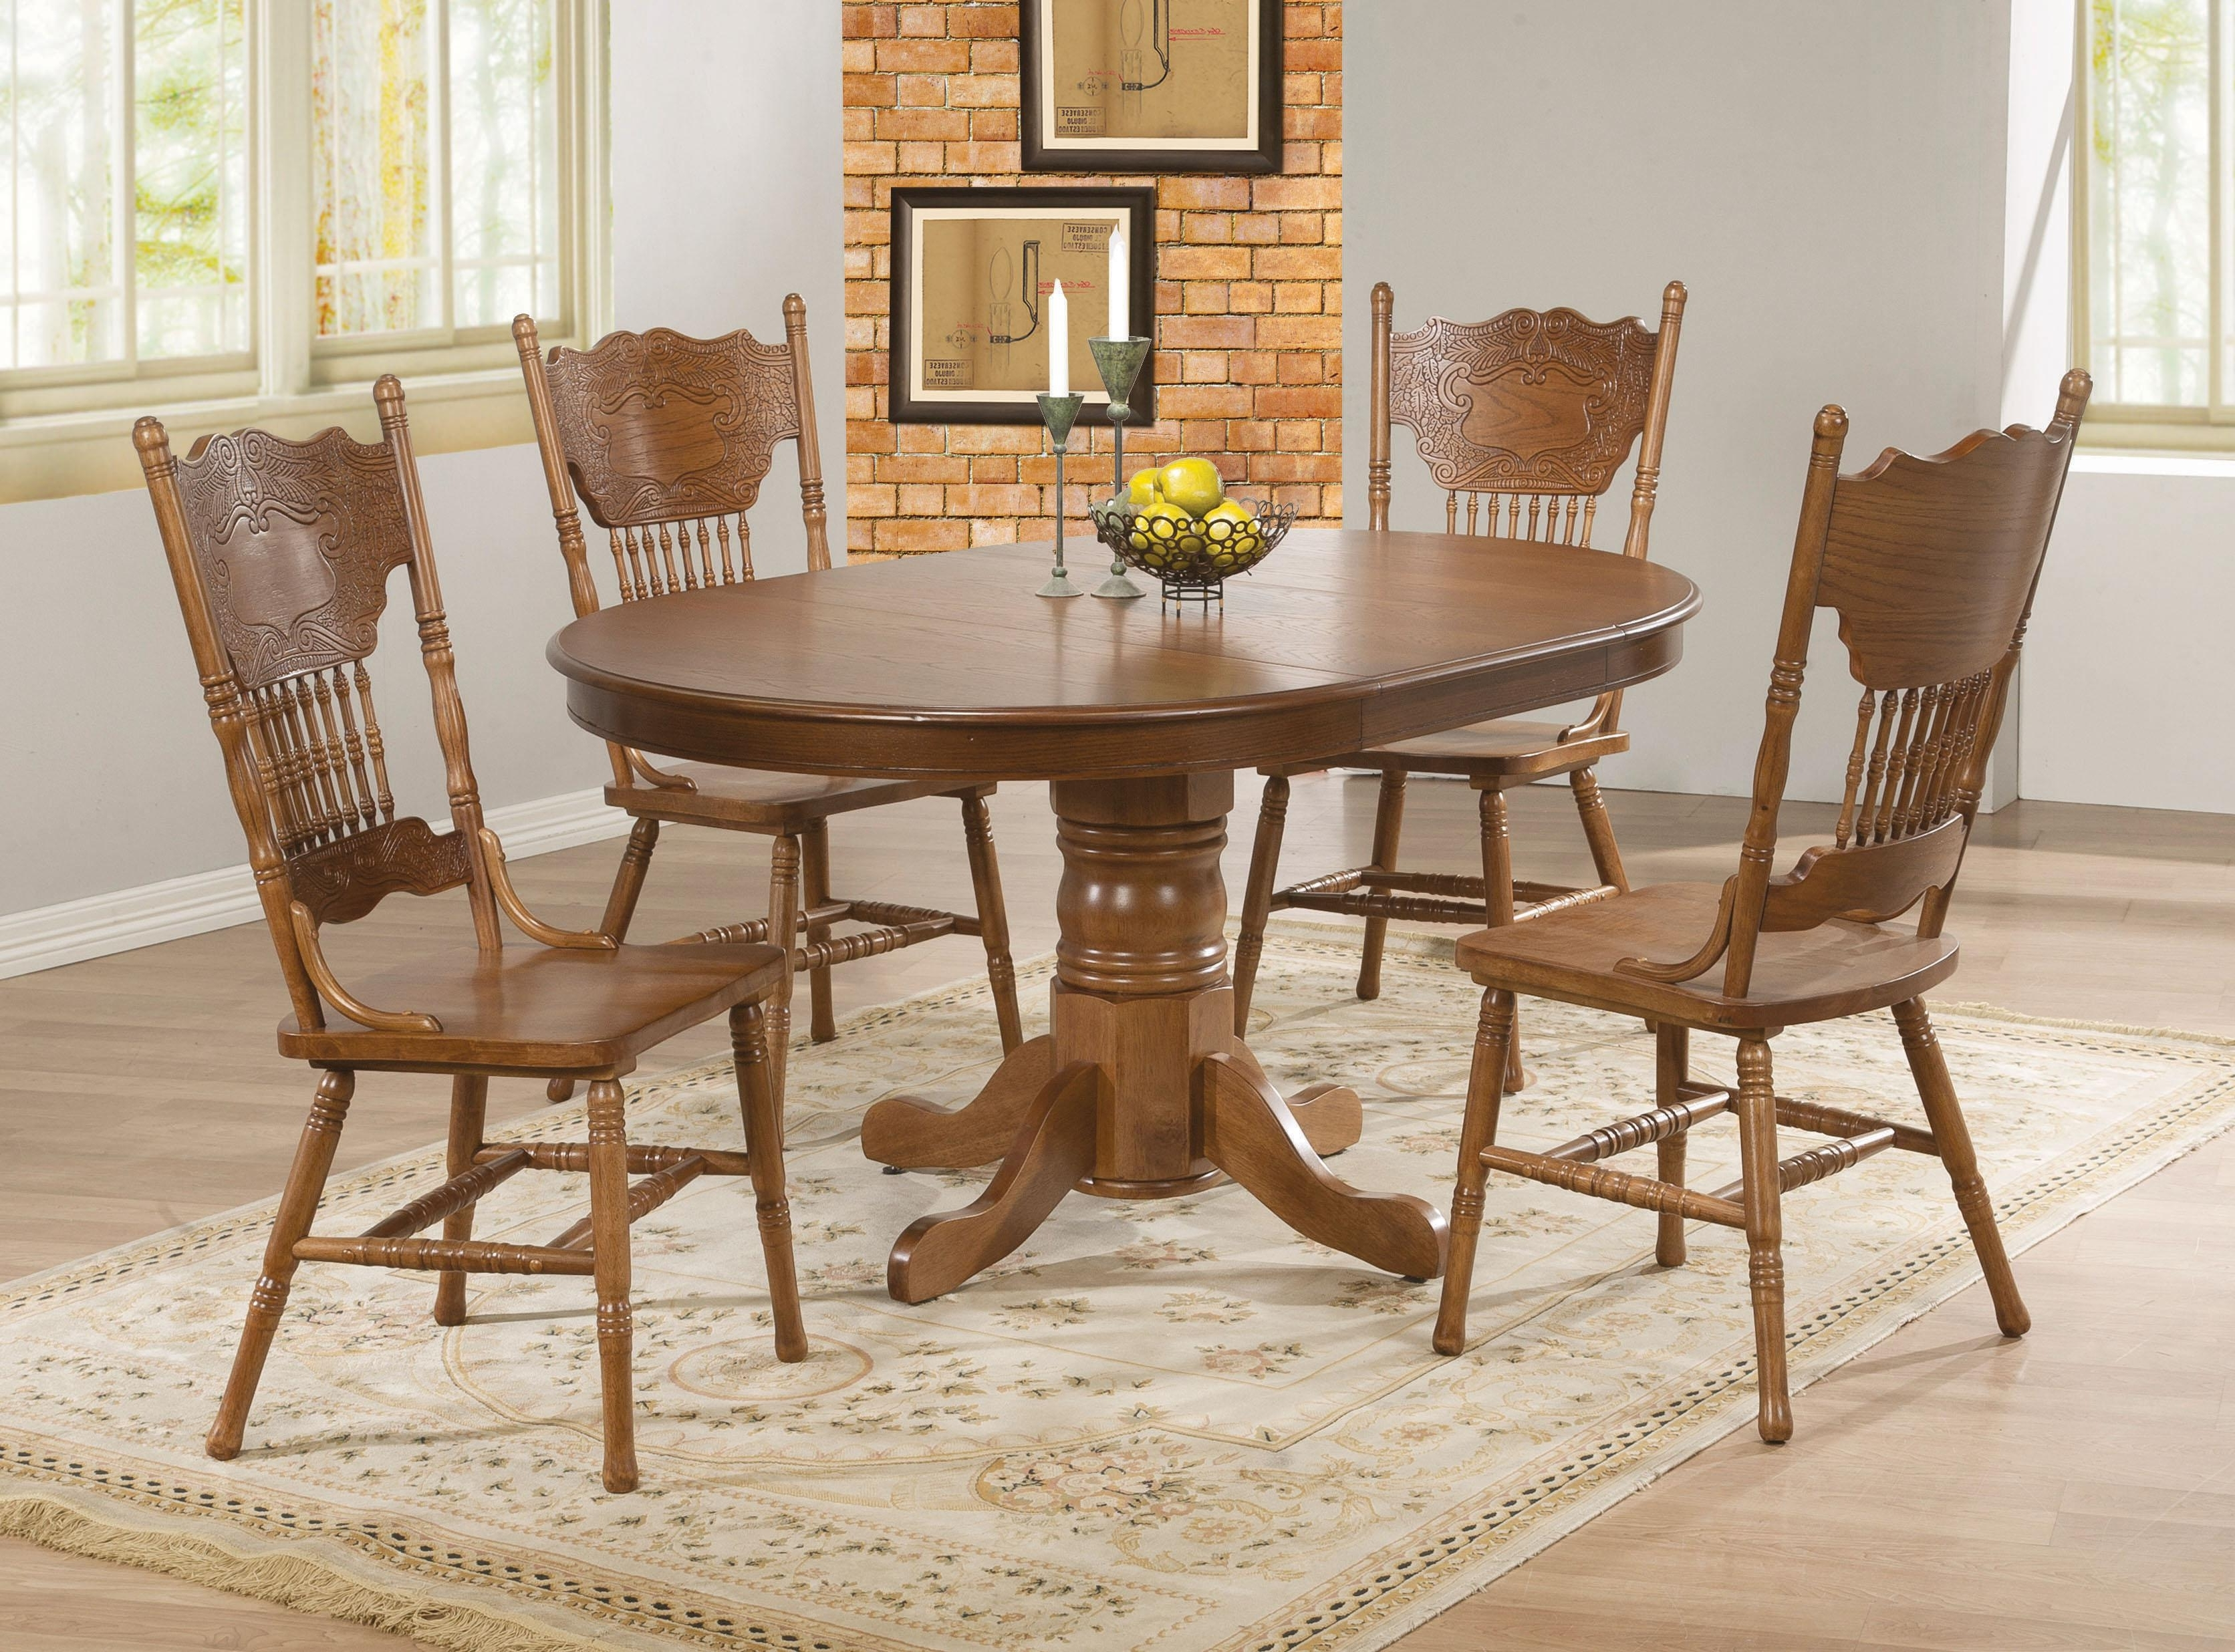 Preferred Round Dining Table Htm Oak Oval Dining Table And Chairs As Glass Within Glass And Oak Dining Tables And Chairs (View 22 of 25)